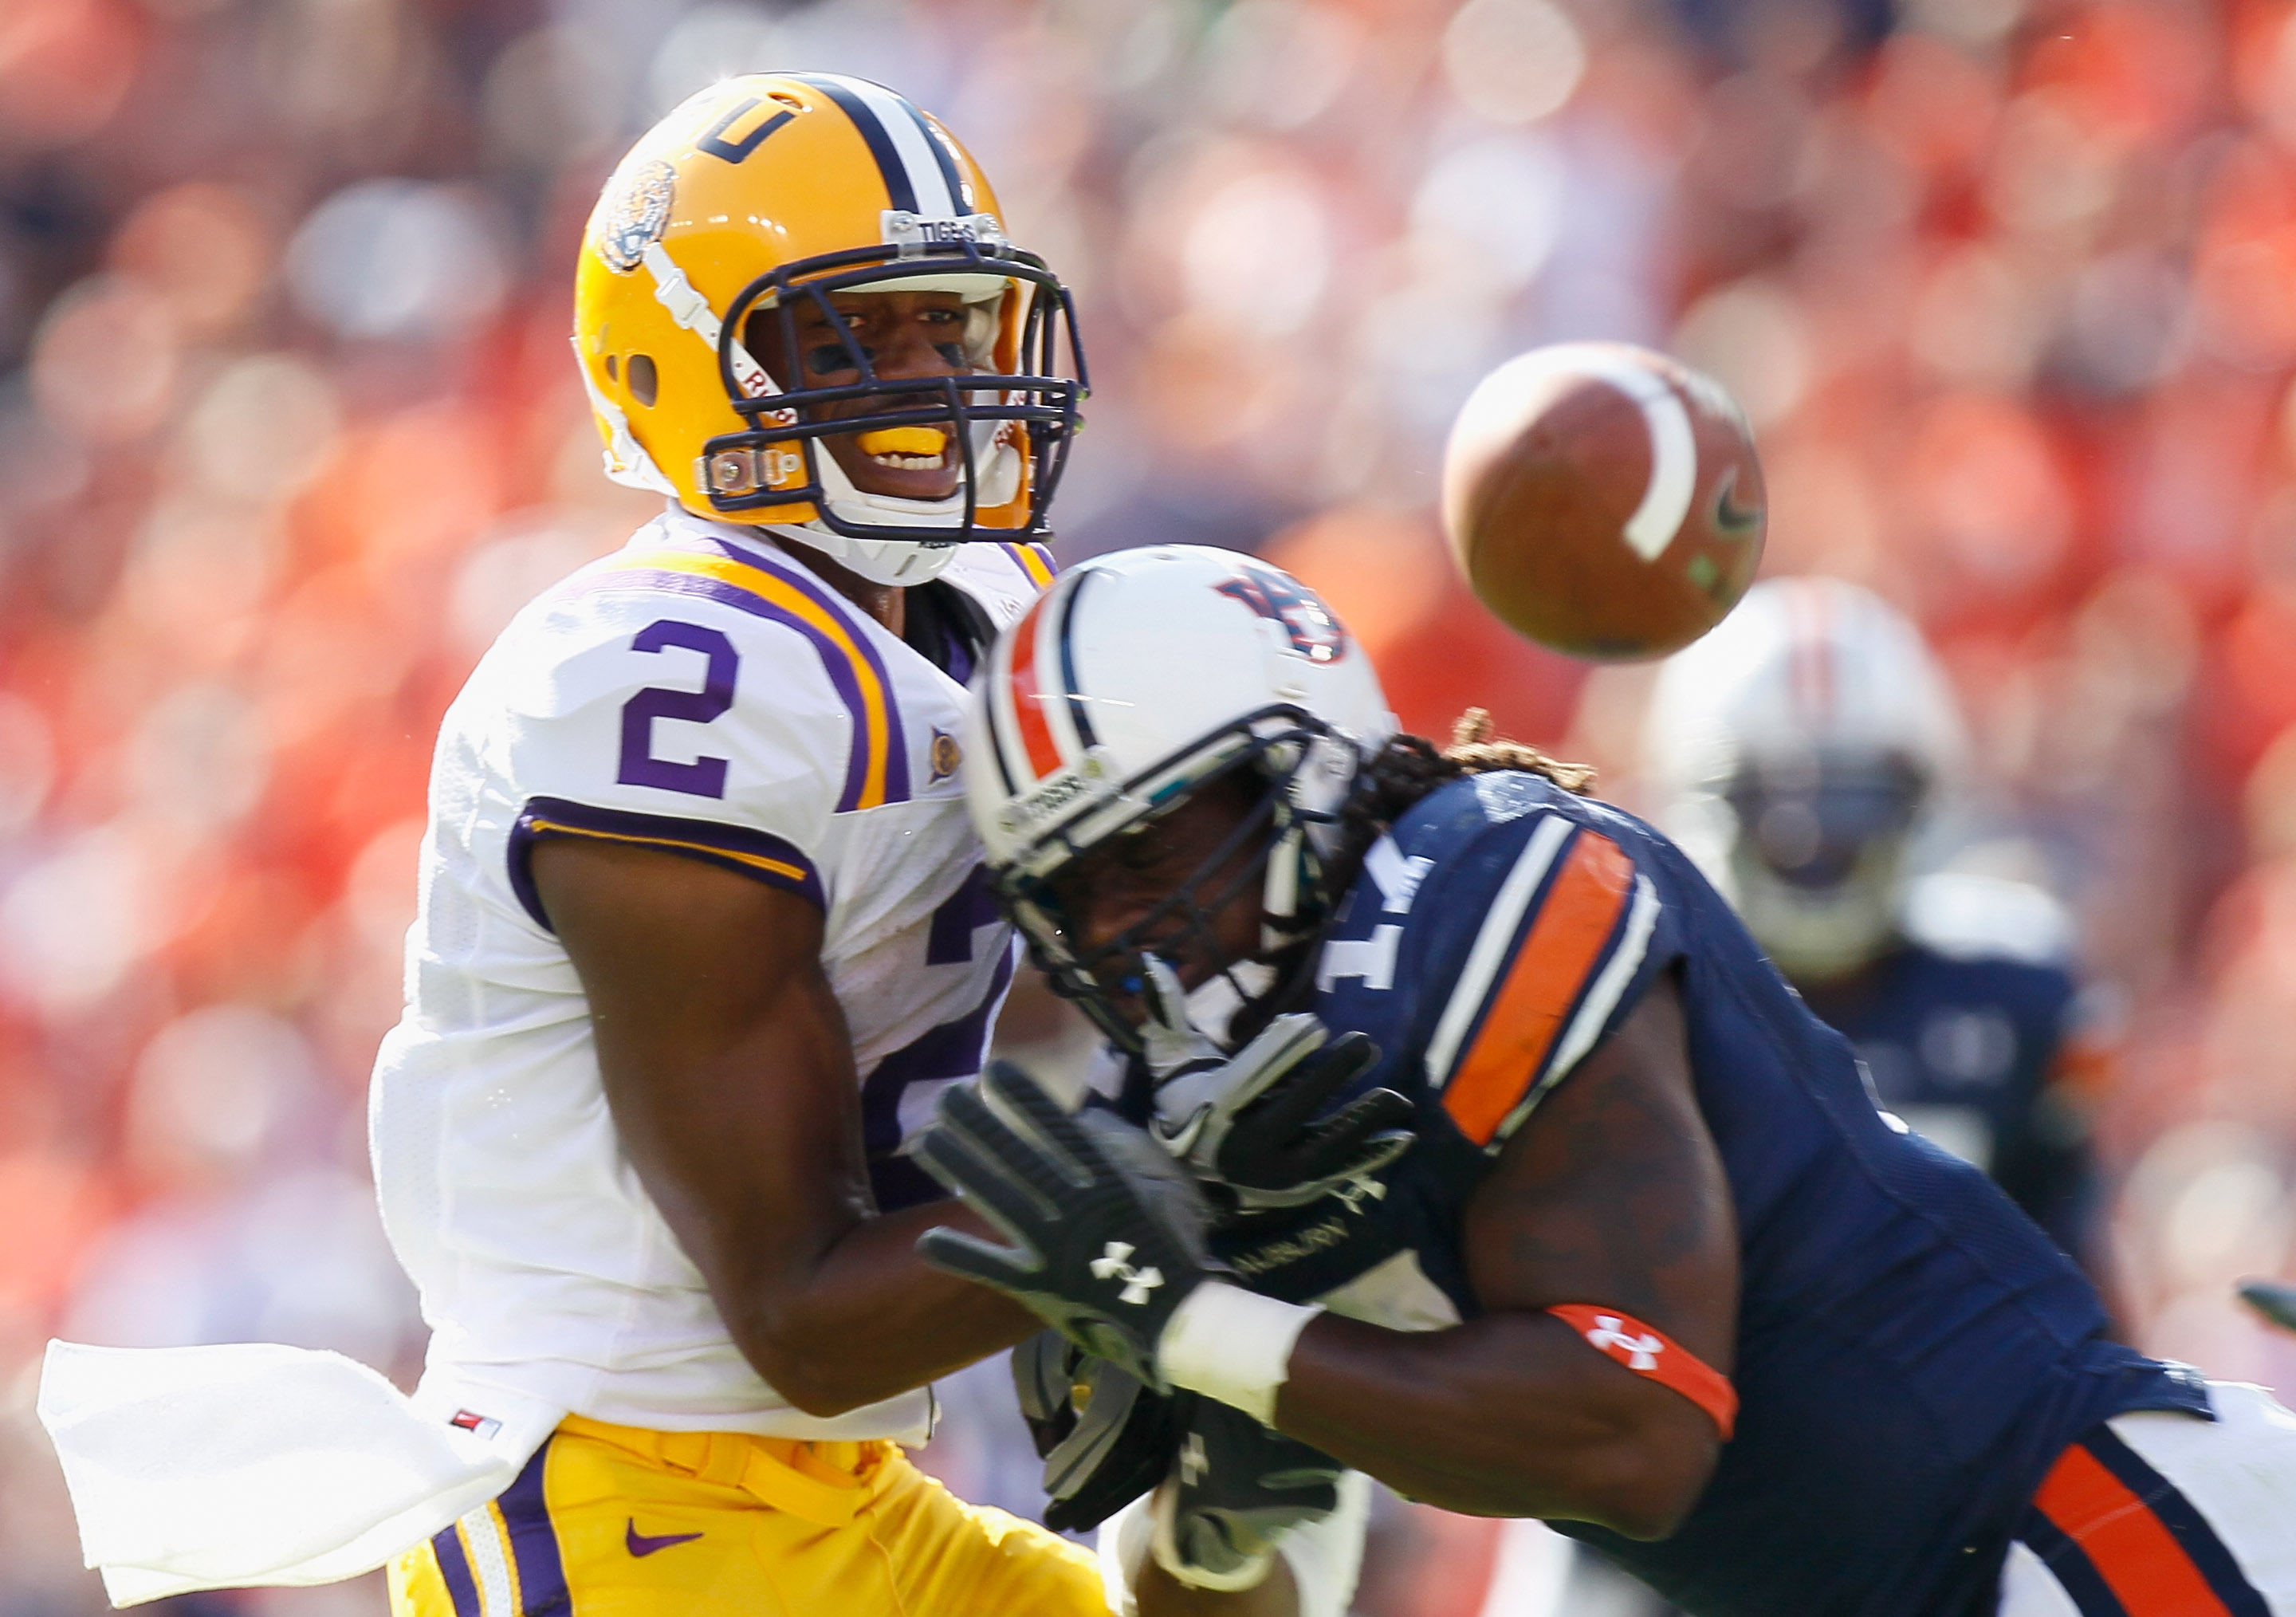 AUBURN, AL - OCTOBER 23:  Josh Bynes #17 of the Auburn Tigers forces an interception as he breaks up a pass intended for Rueben Randle #2 of the LSU Tigers at Jordan-Hare Stadium on October 23, 2010 in Auburn, Alabama.  (Photo by Kevin C. Cox/Getty Images